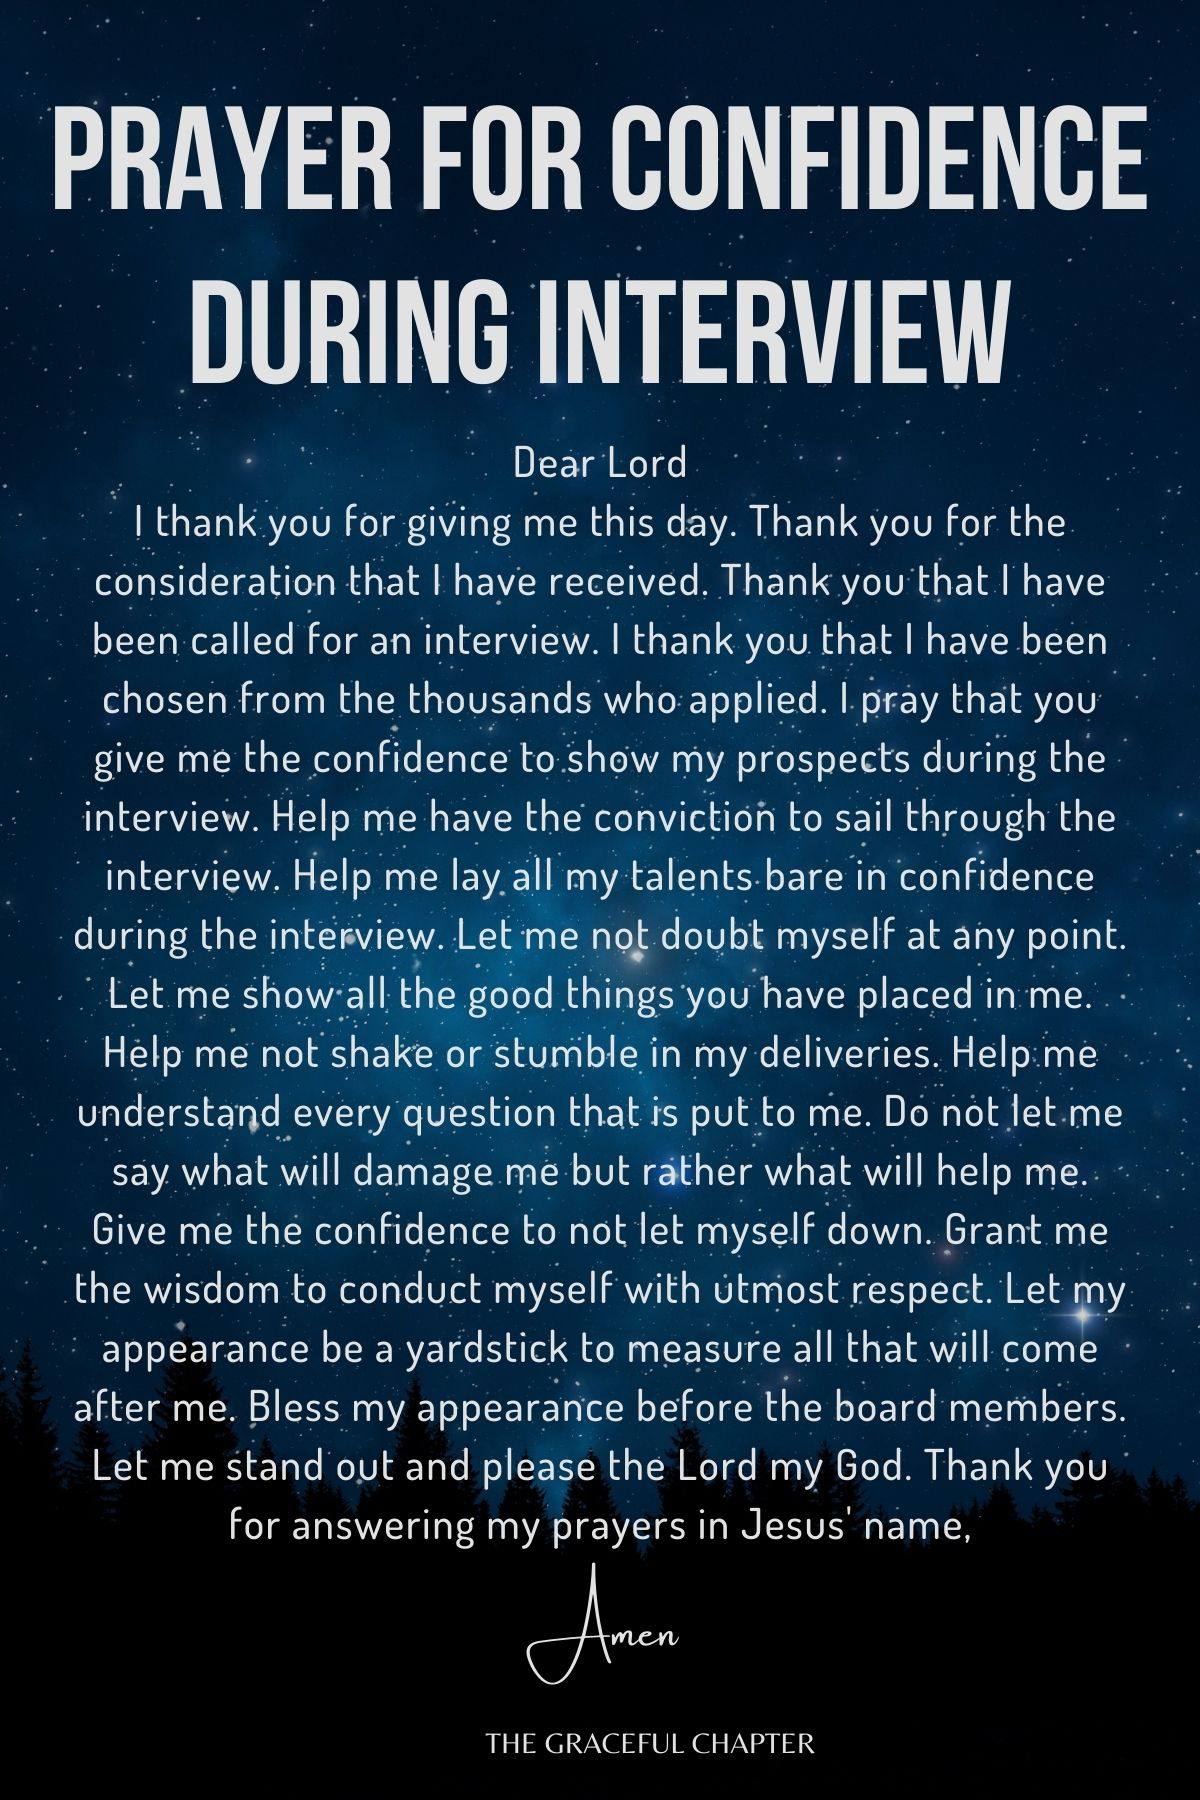 Prayer for confidence during interview